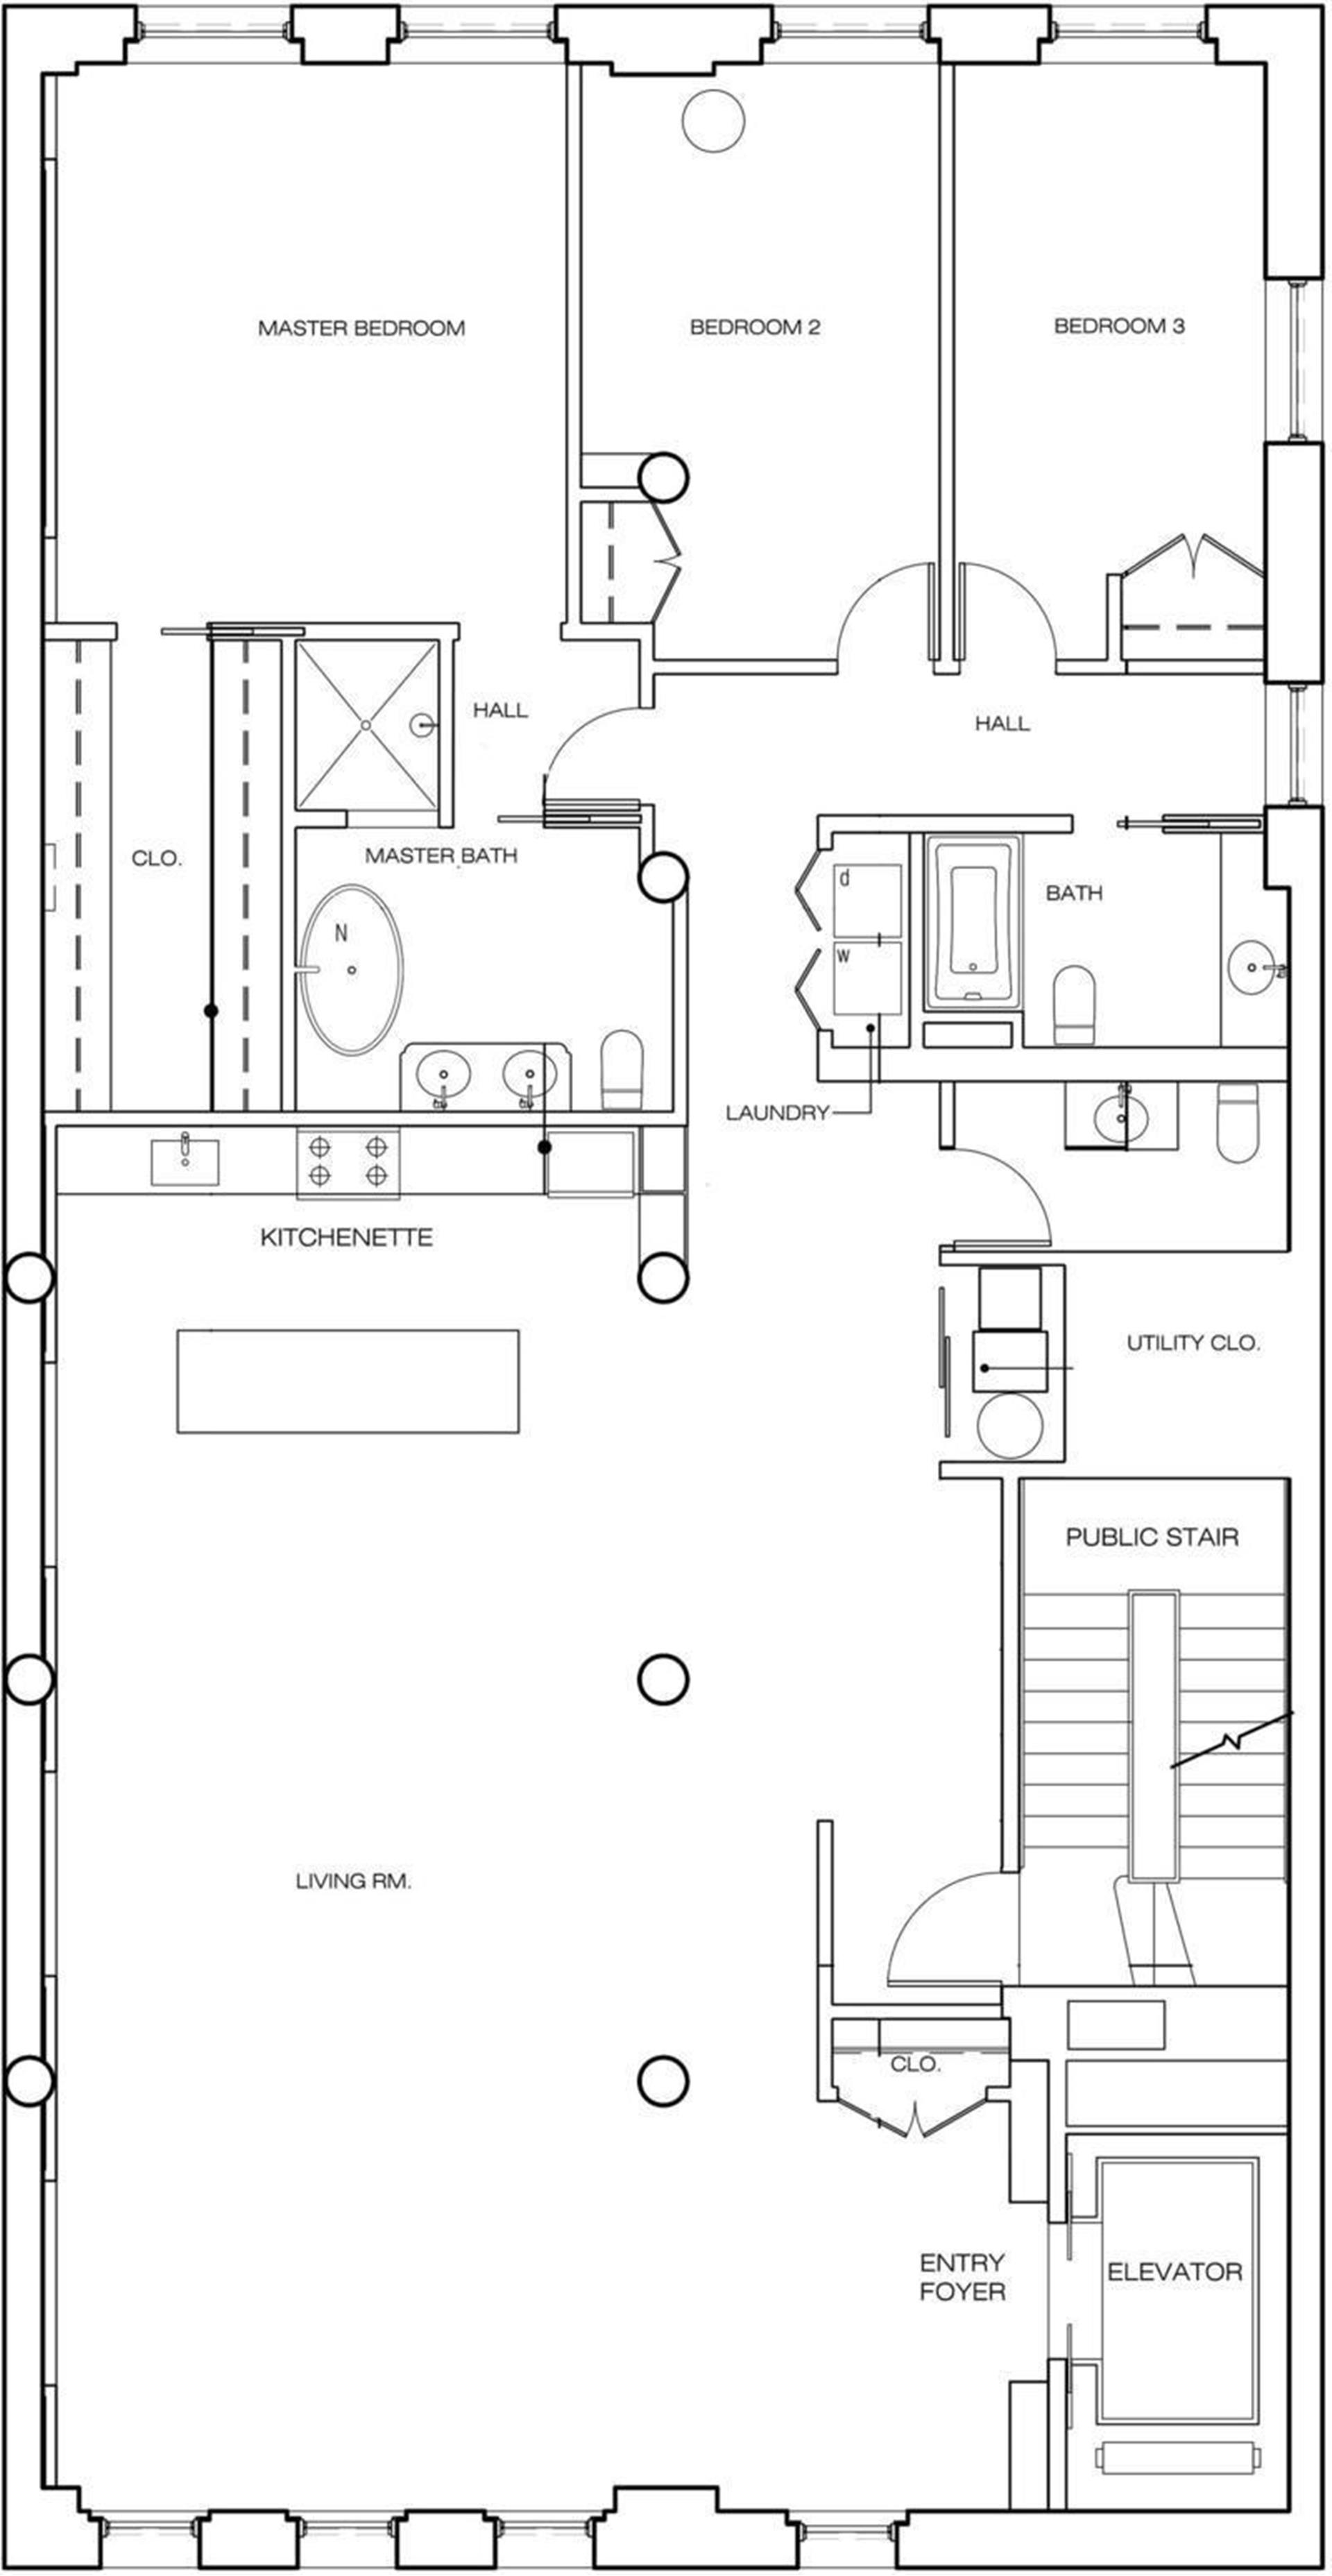 Floor plan of 60 Beach Street, 6D - TriBeCa, New York